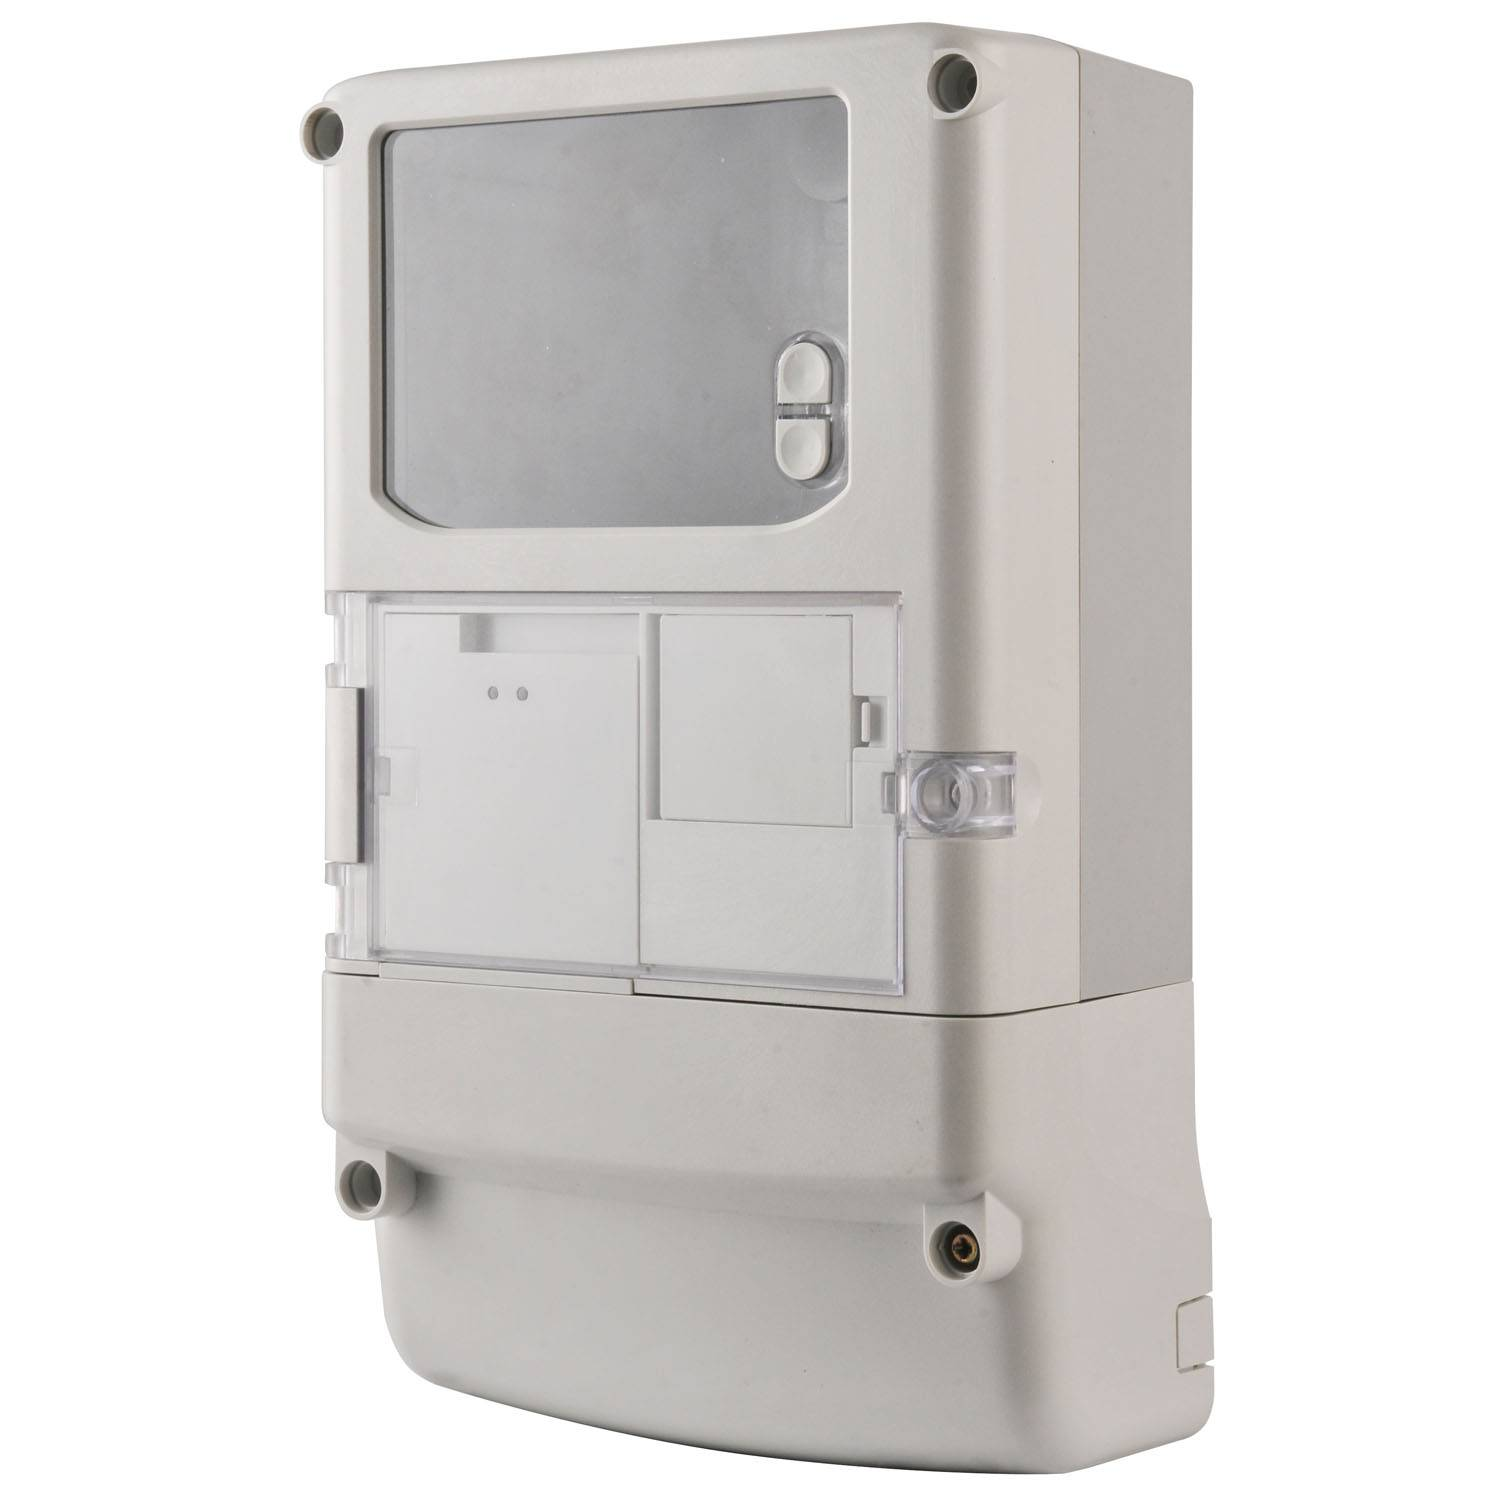 Three Phase Electric Enclosure Wall Mount (DTSD-3060-7) Small volume